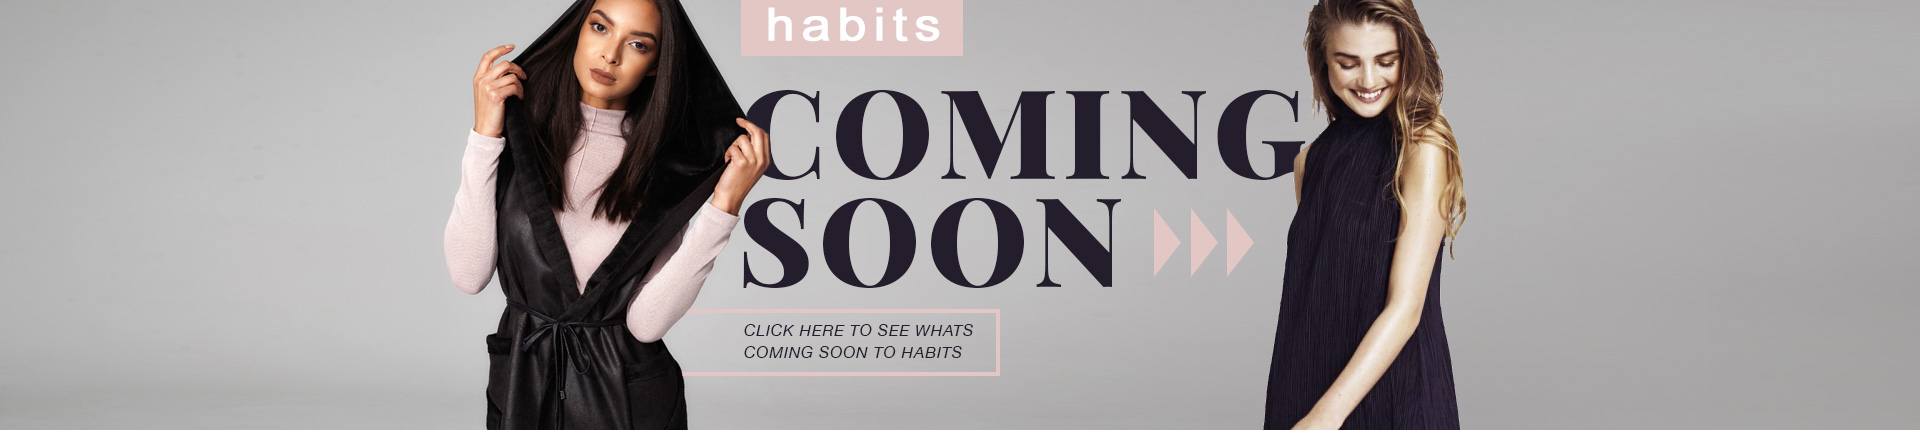 Coming Soon to Habits